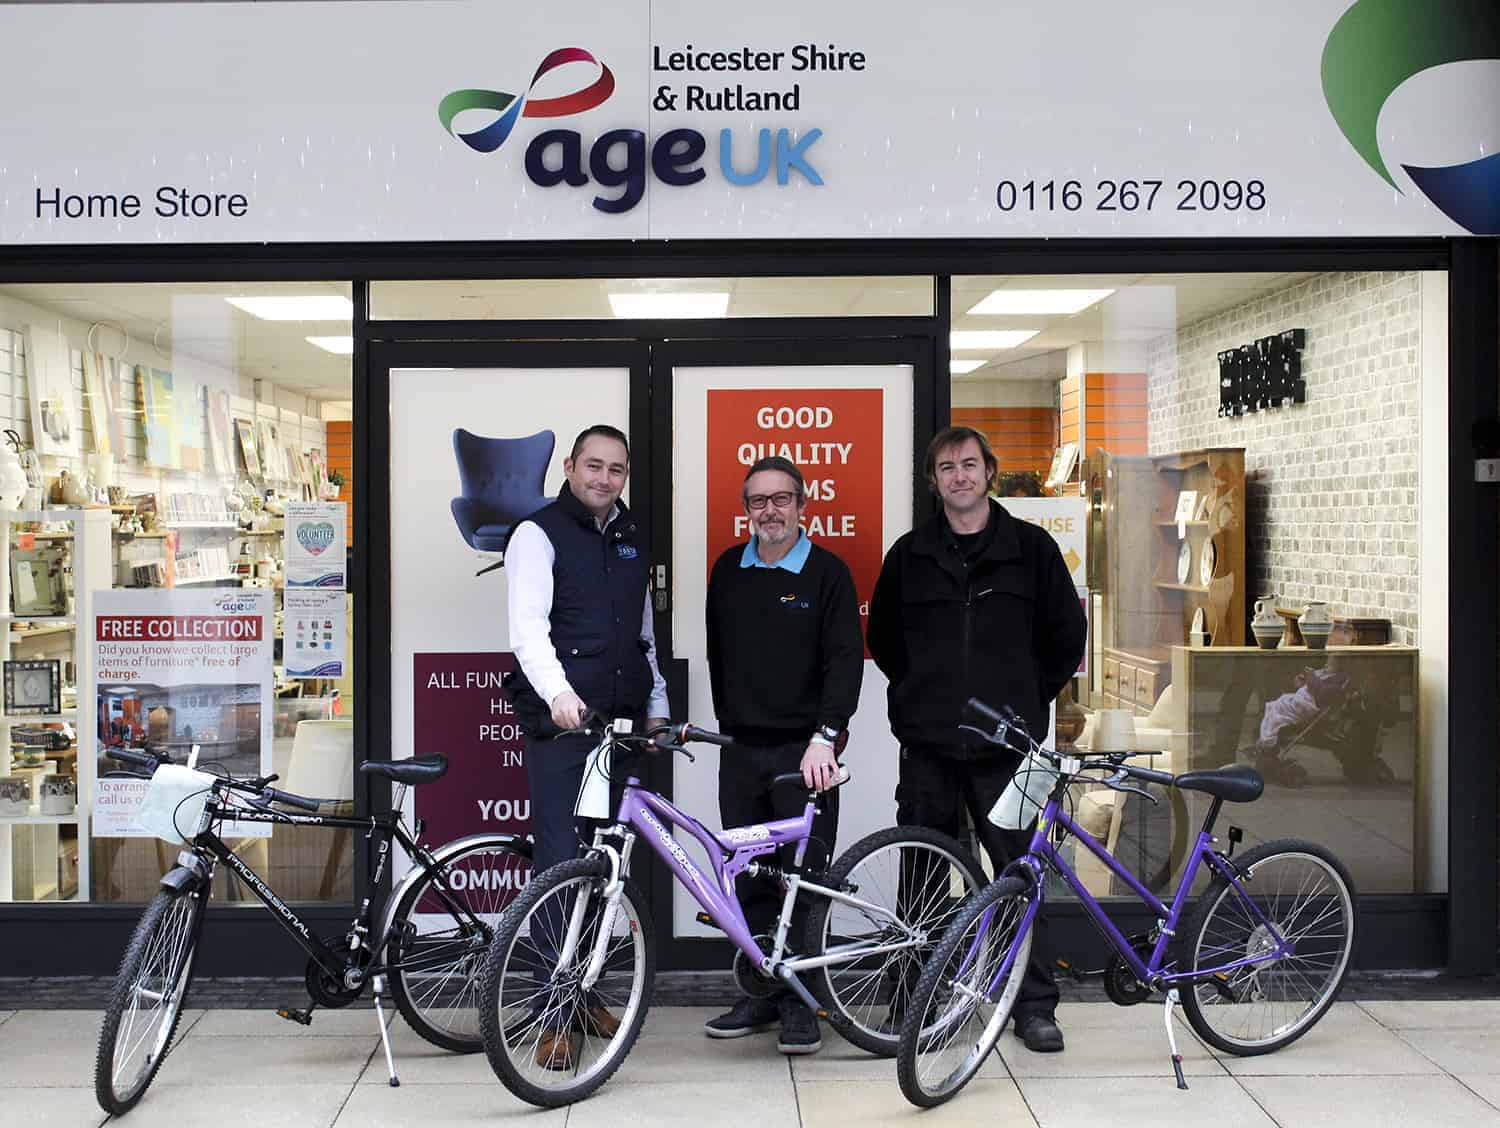 Age UK Bikes Donation from Bakers Waste